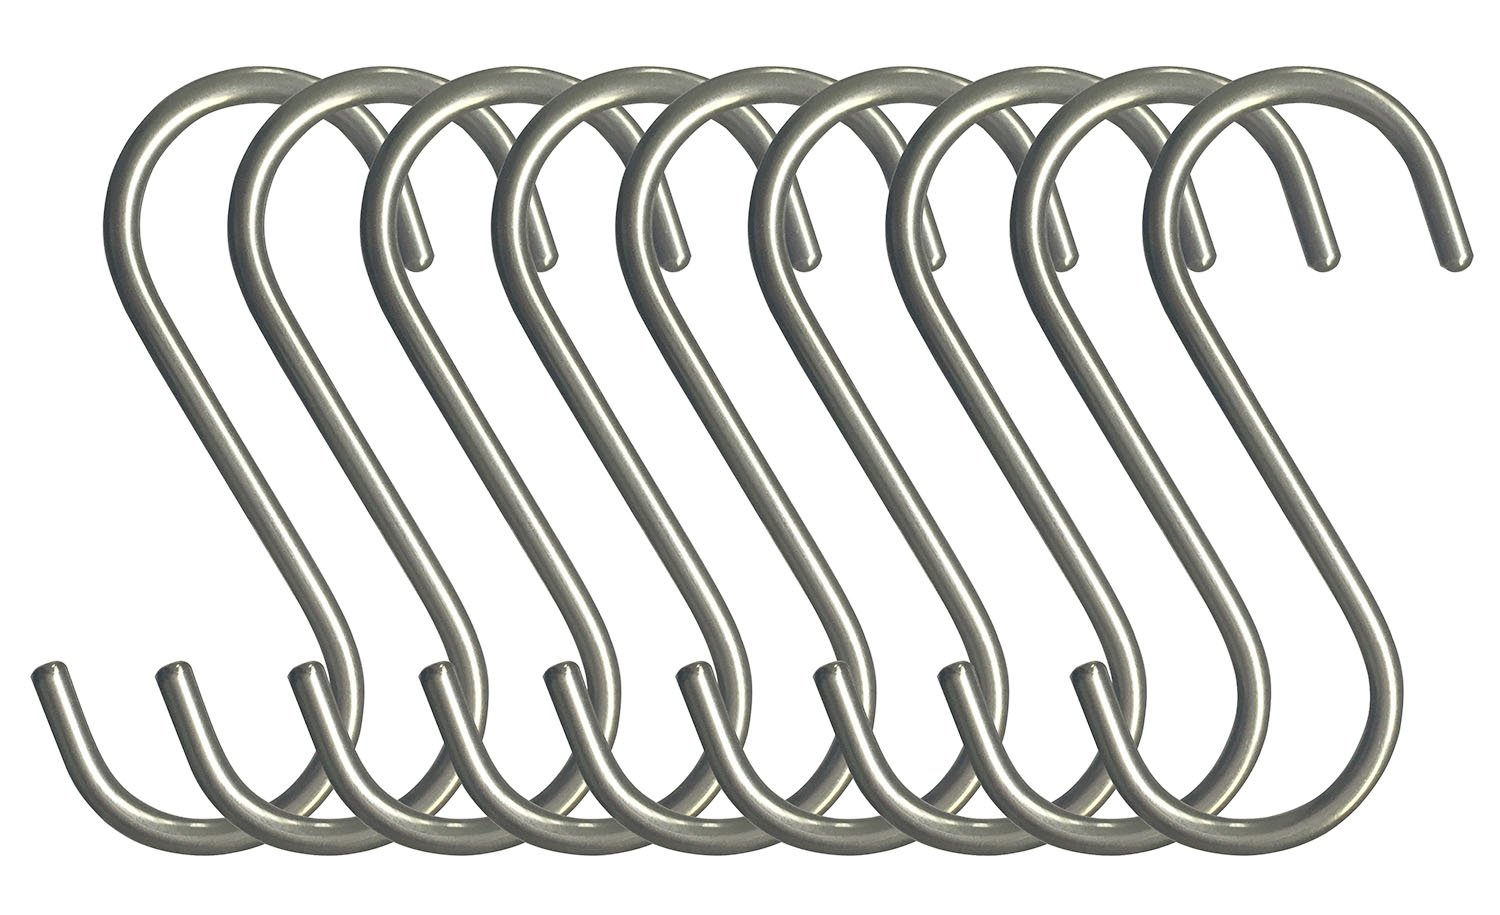 RuiLing 10-Pack S Shaped Hooks Heavy-Duty Genuine Solid Polished Stainless Steel Hanging Hooks,Kitchen Spoon Pot Hanging Hooks Hangers Clothes Storage Rack Multiple uses - Size Large